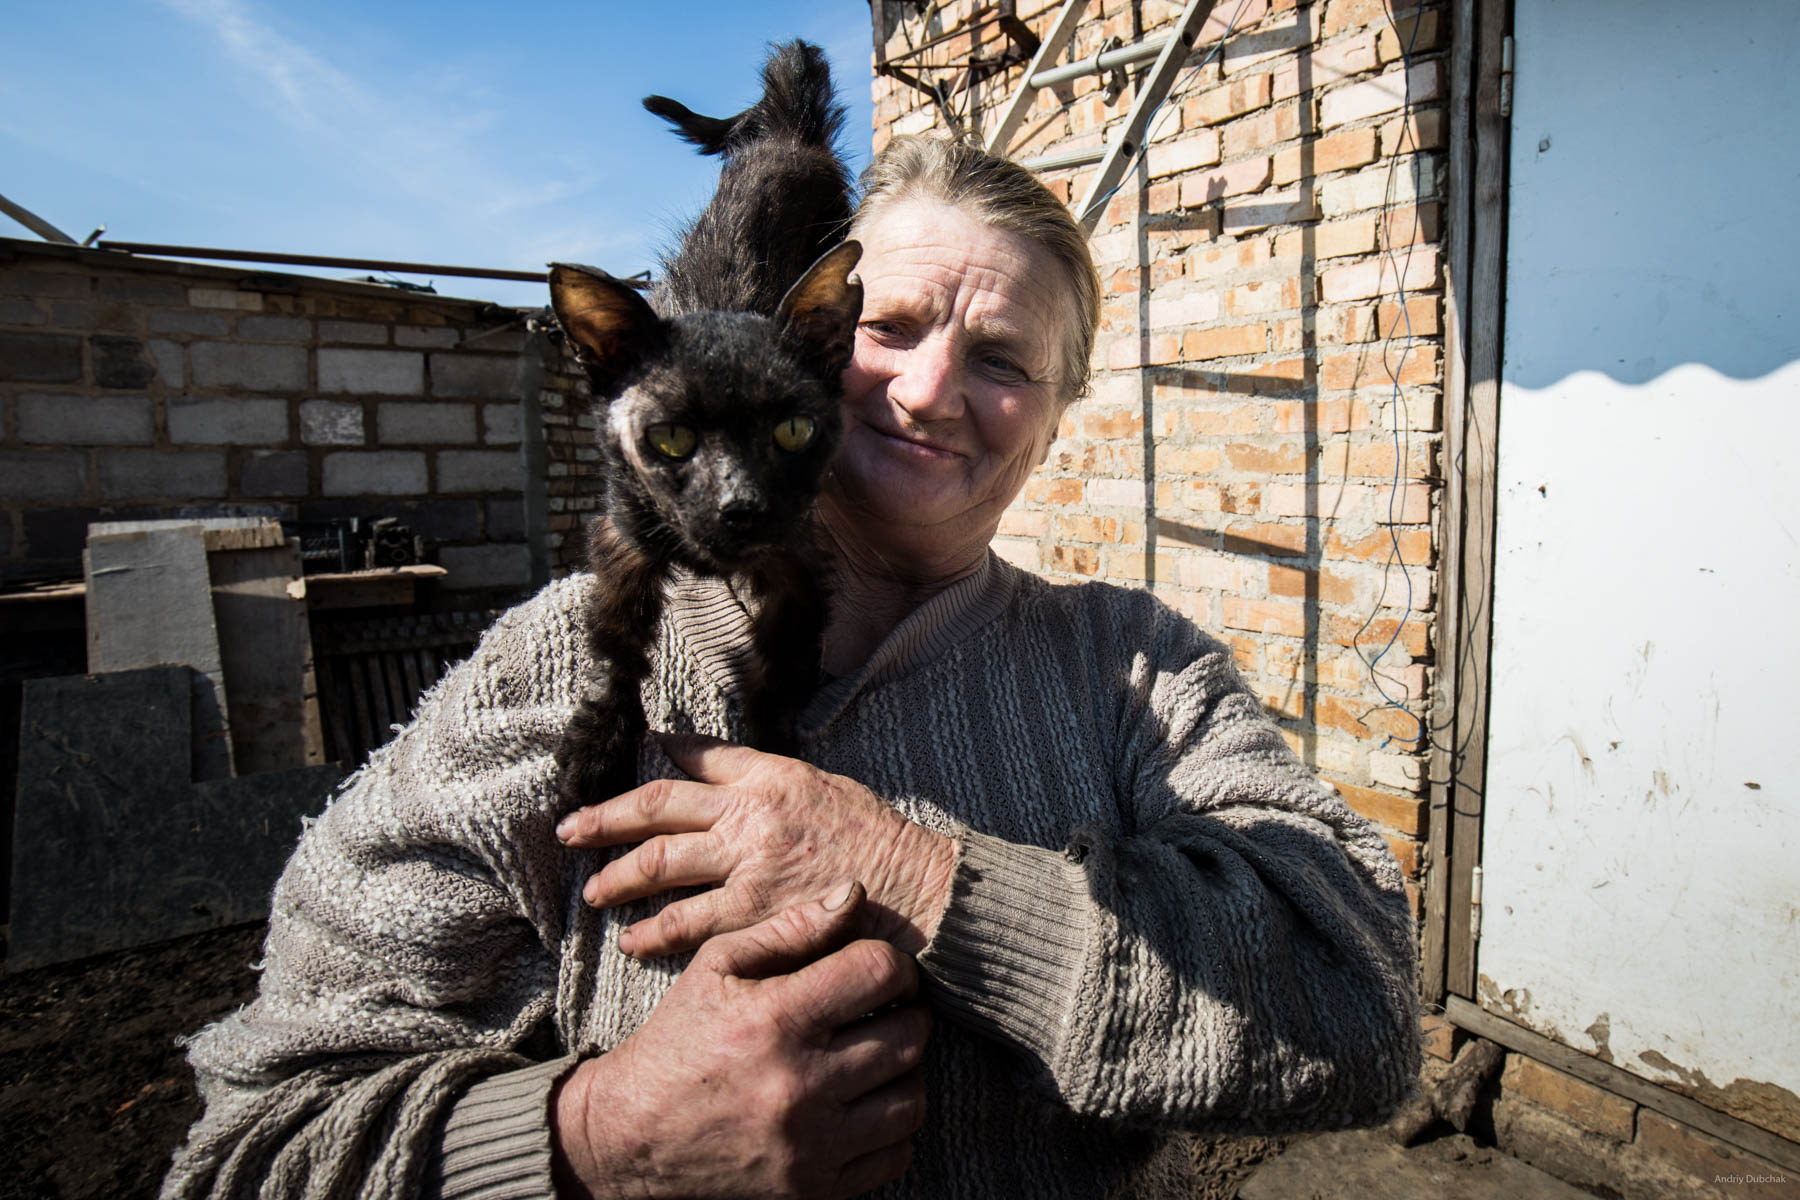 """Hello from Vodyane"". Baba Zoe with her cat Timka. The cat was wounded and ill, the woman nursed it, as she could. Vodyane, March 2018."